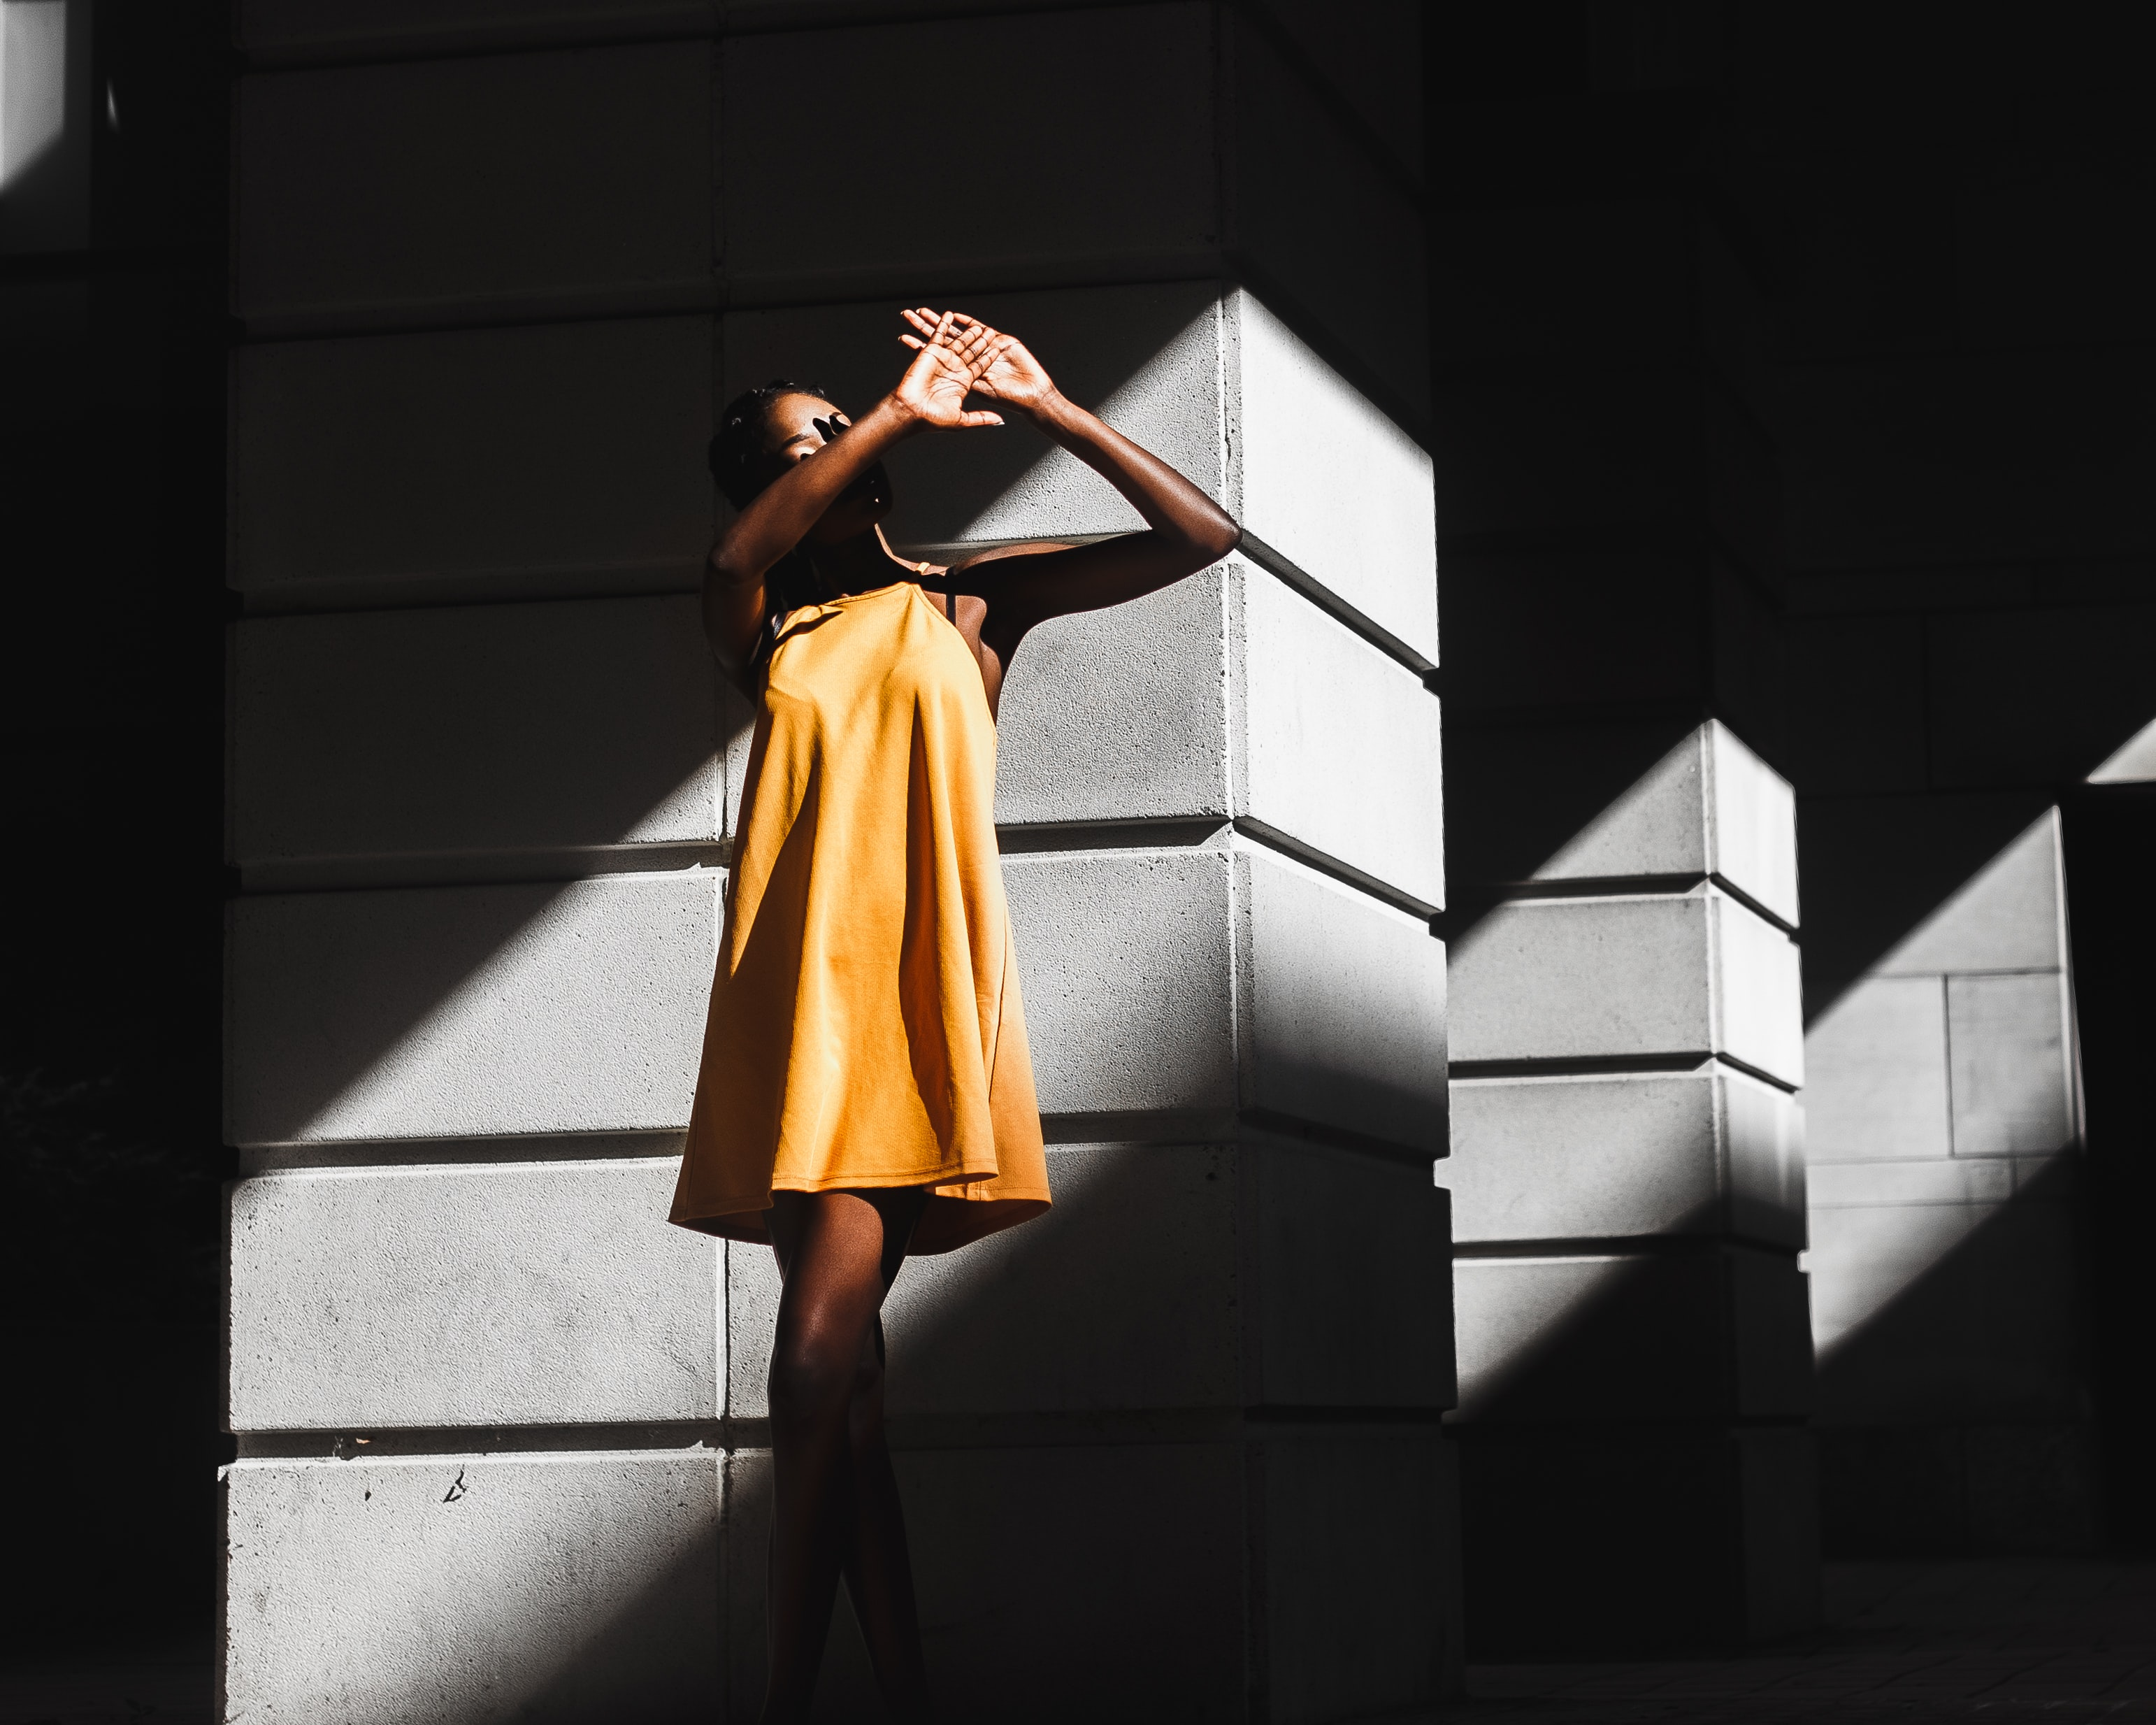 Woman in a yellow dresses blocks sunlight from her face while standing in the shadows